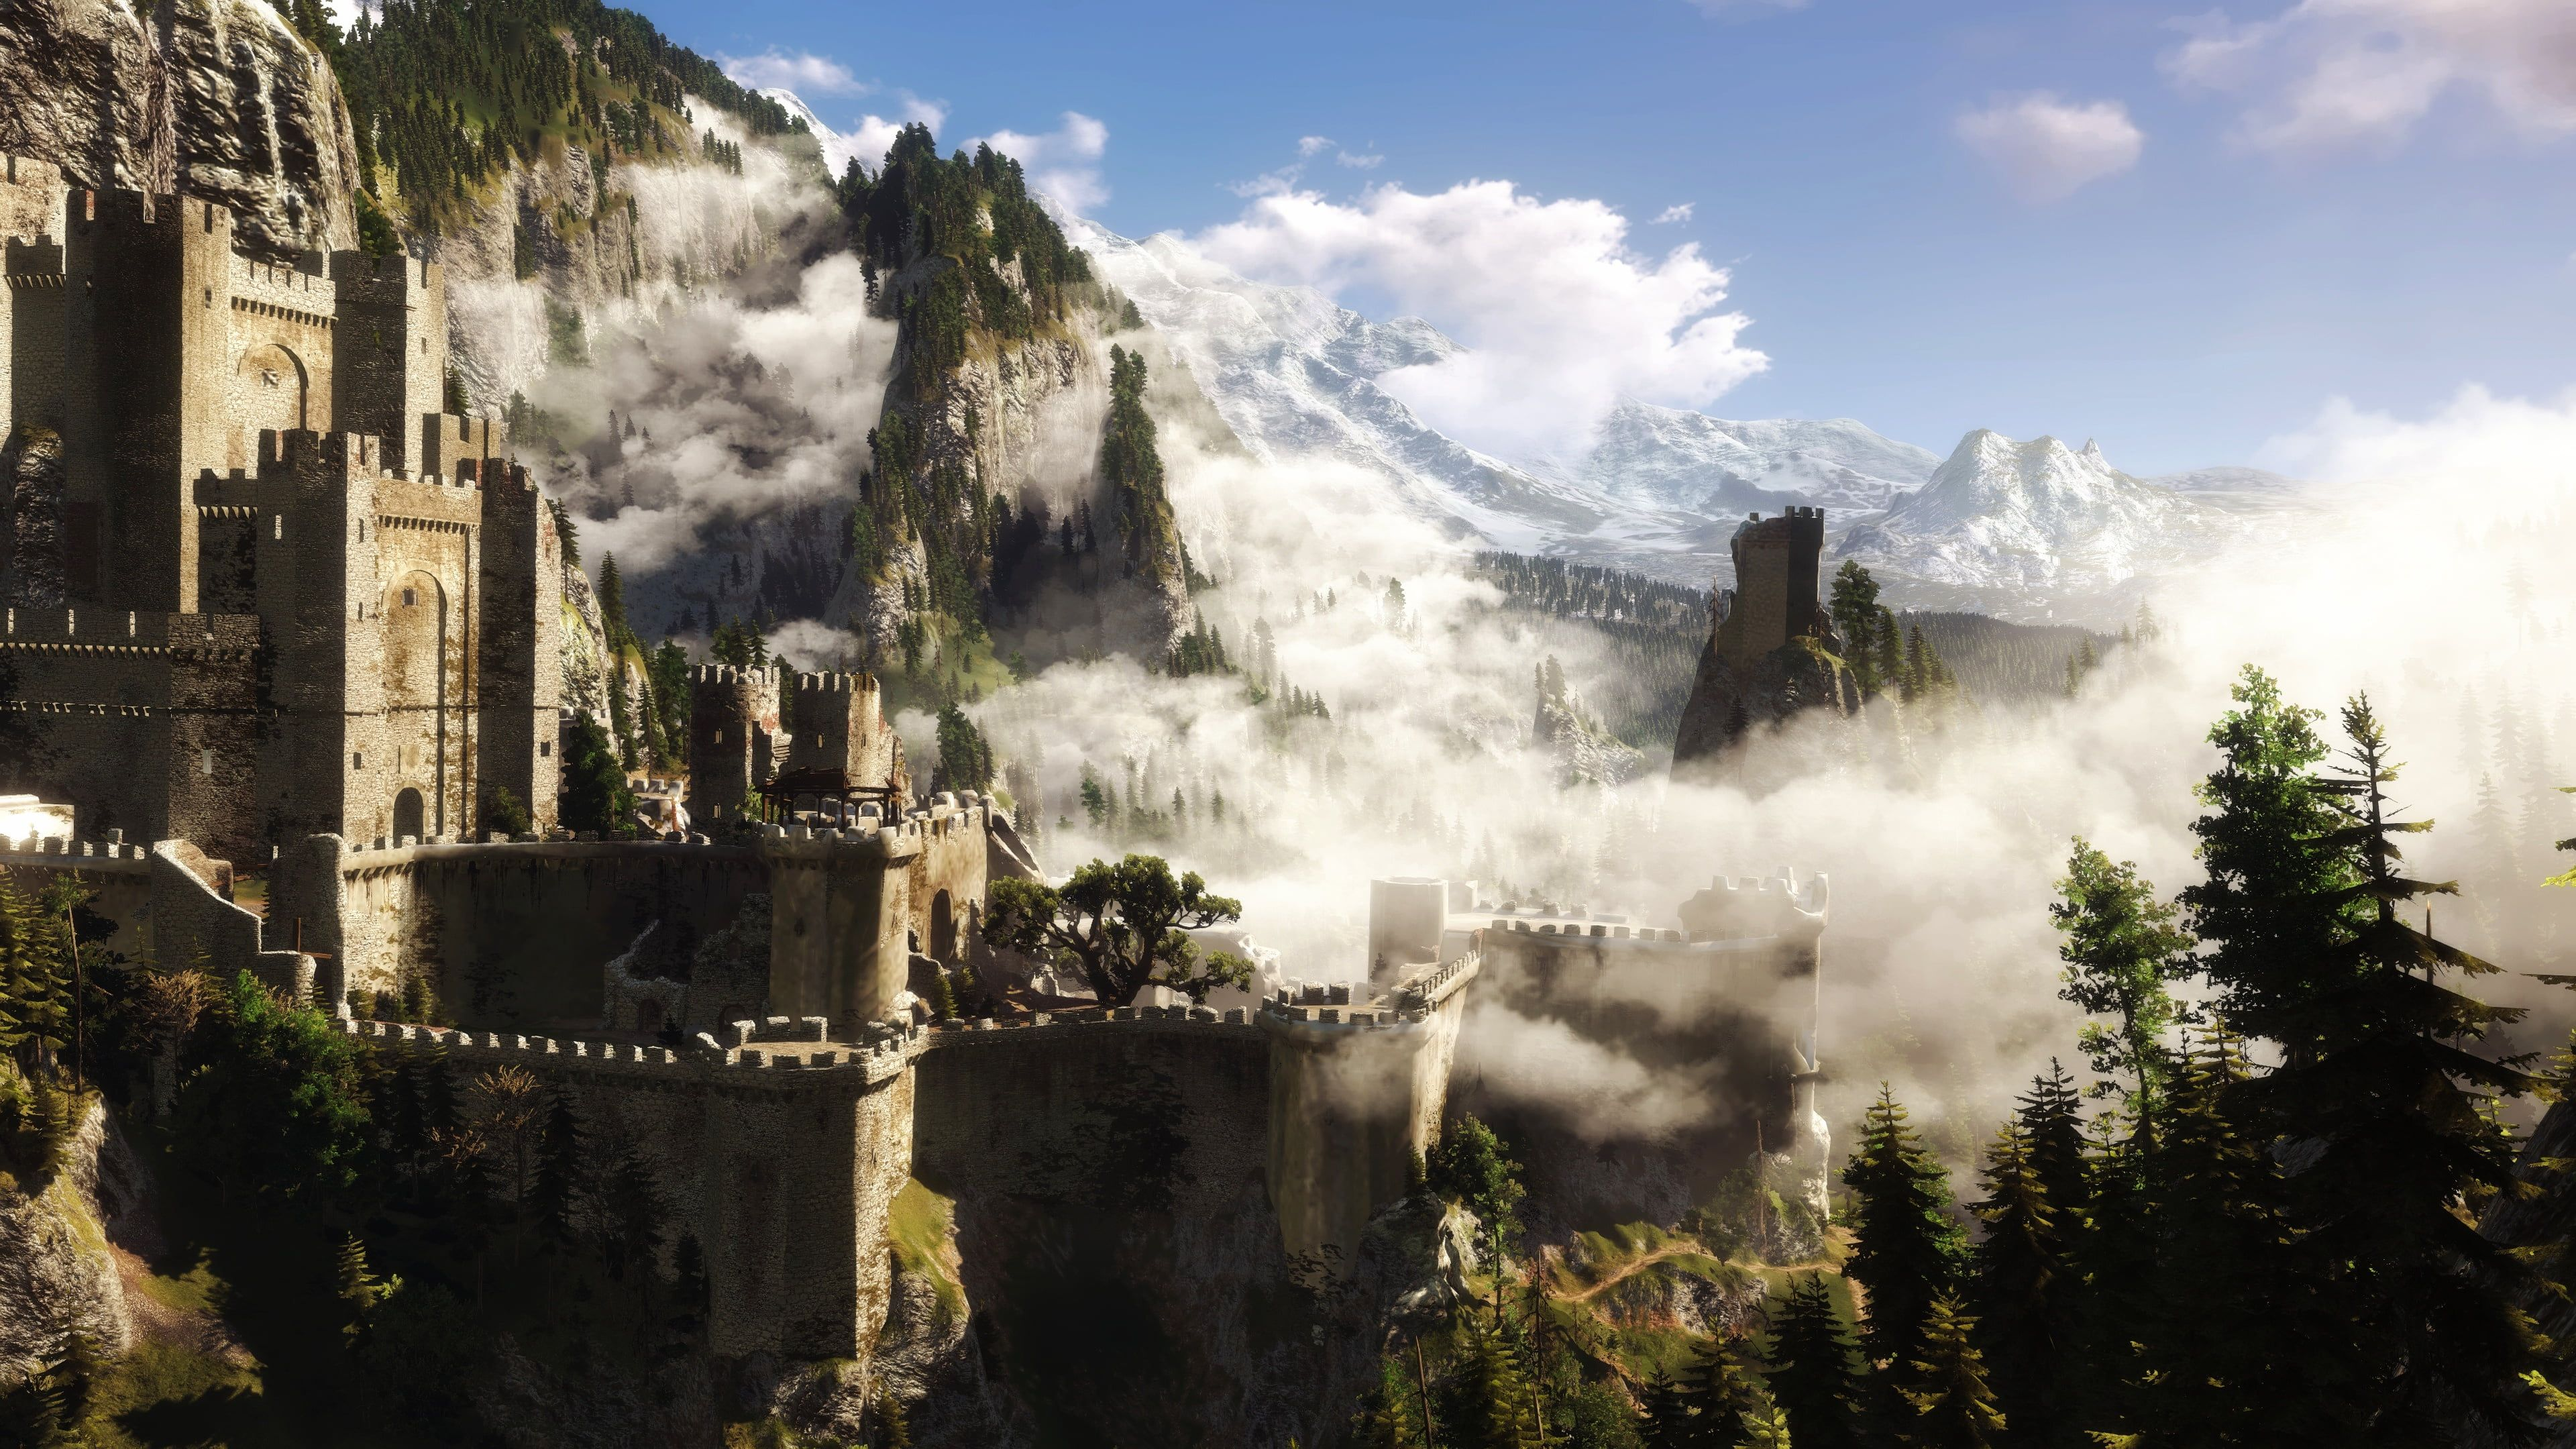 The Witcher The Witcher 3 Kaer Morhen 4k Wallpaper Hdwallpaper Desktop In 2020 The Witcher 3 The Witcher The Witcher Wild Hunt